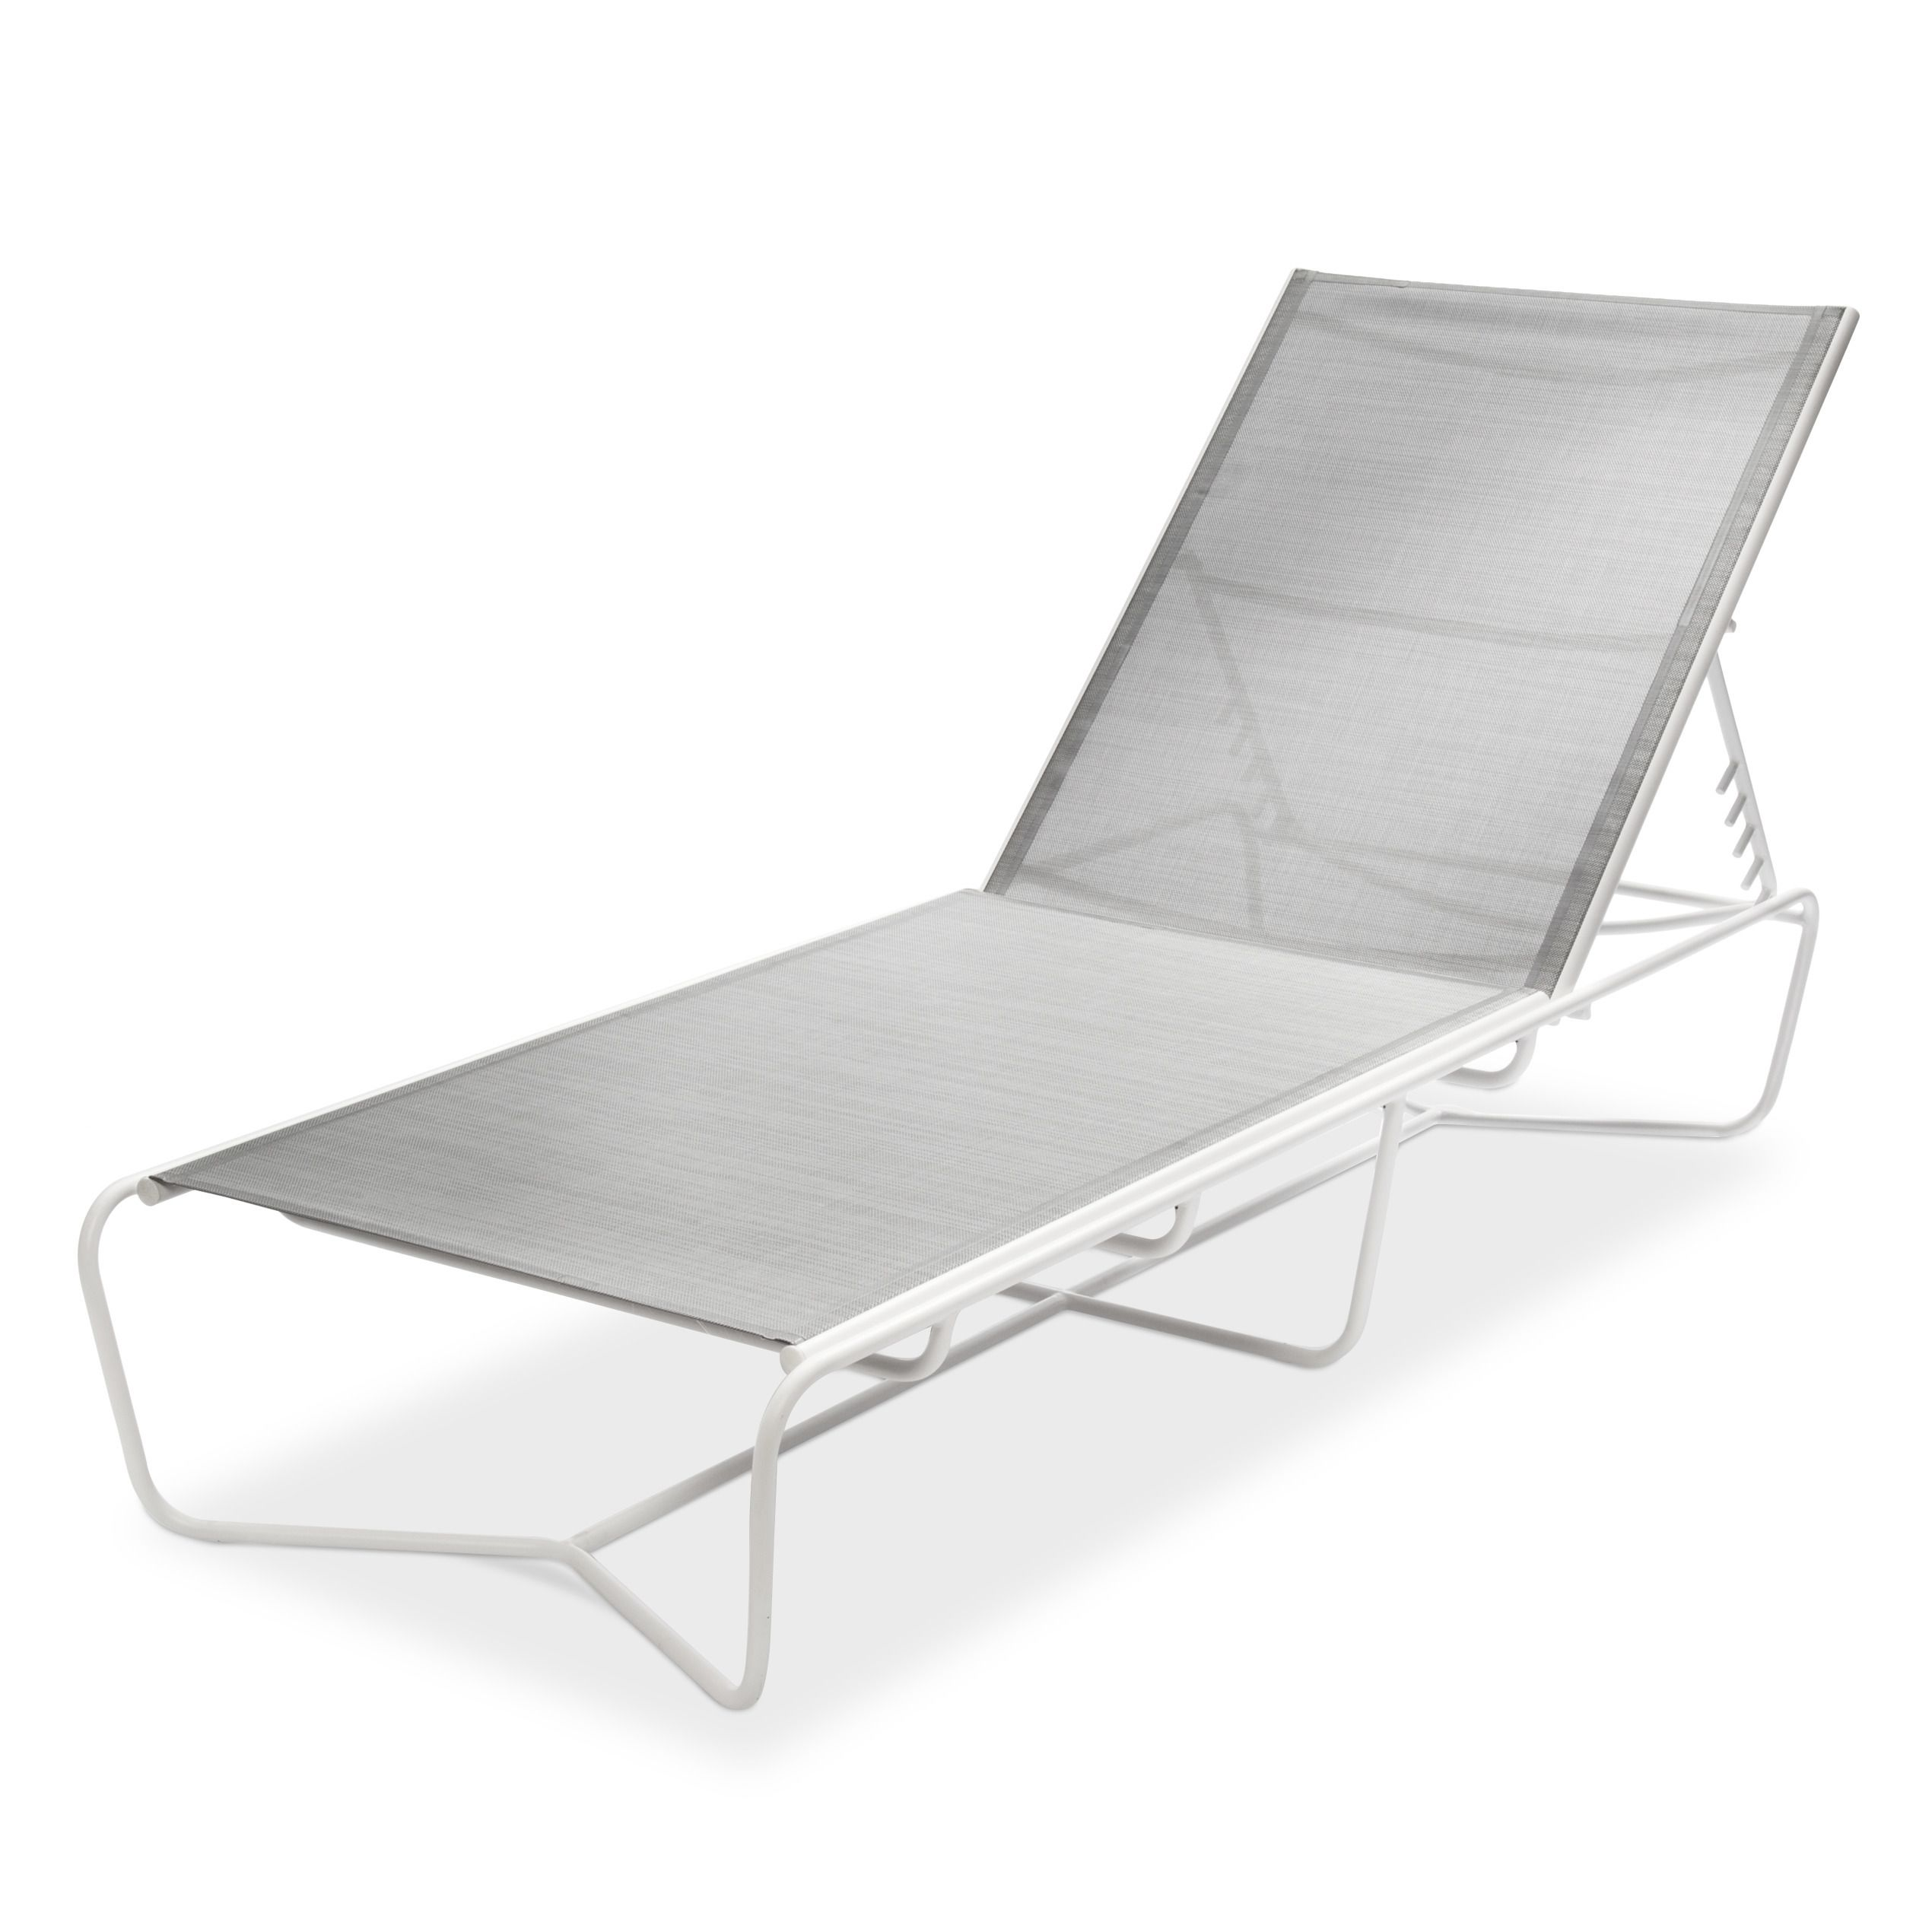 Photo 17 Of 17 In Modern By Dwell Magazine Outdoor Collection Grey Outdoor Furniture Outdoor Chaise Lounge Cushions Lounge Chair Outdoor